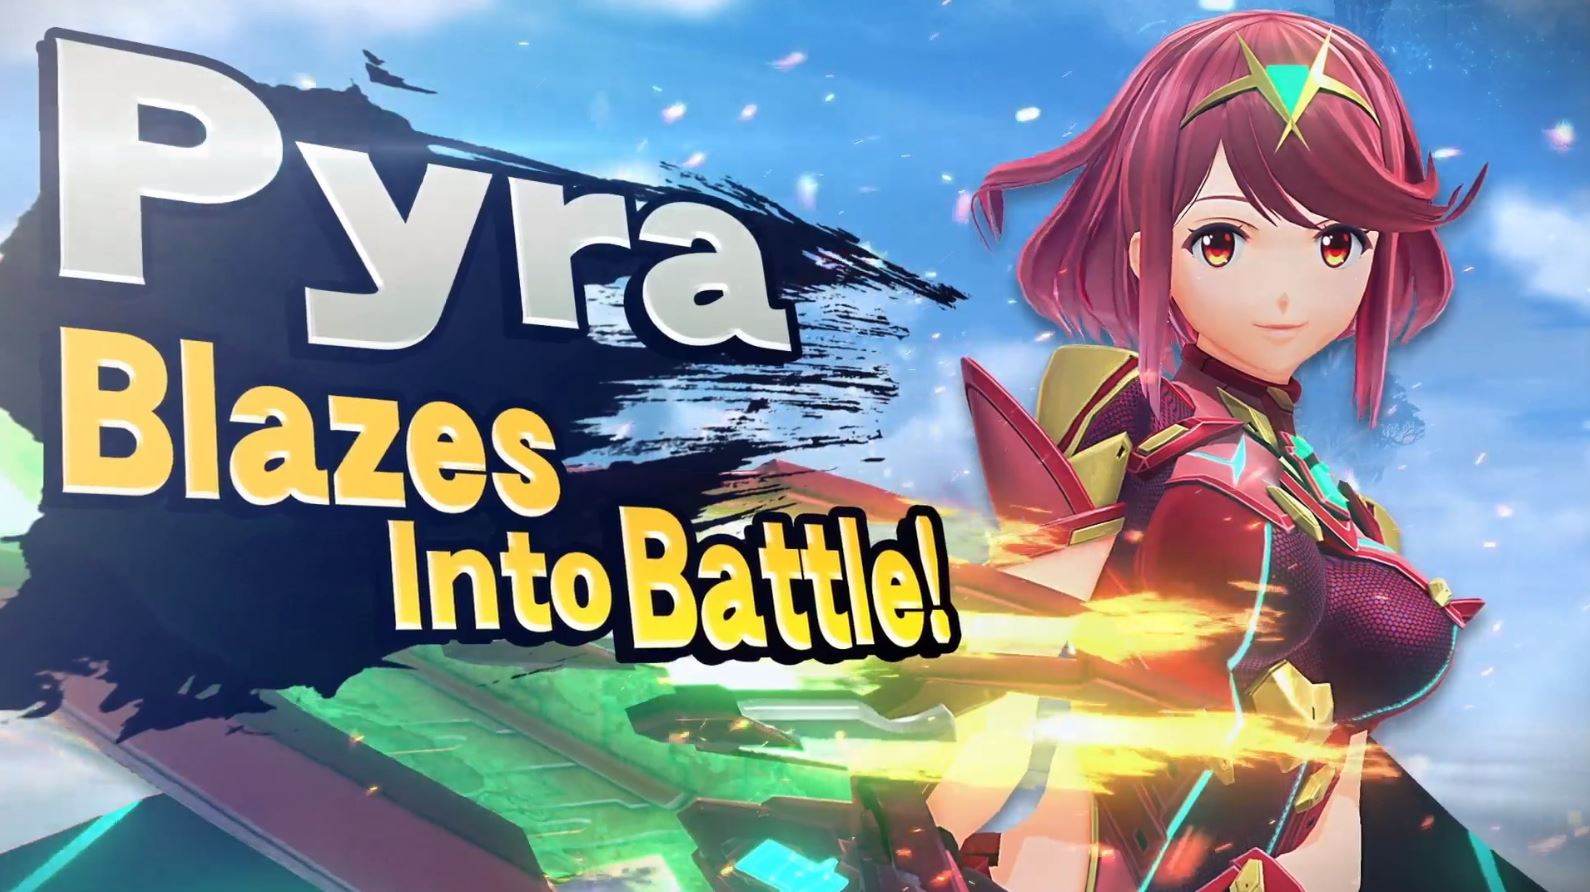 Pyra and Mythra join Super Smash Bros. Ultimate